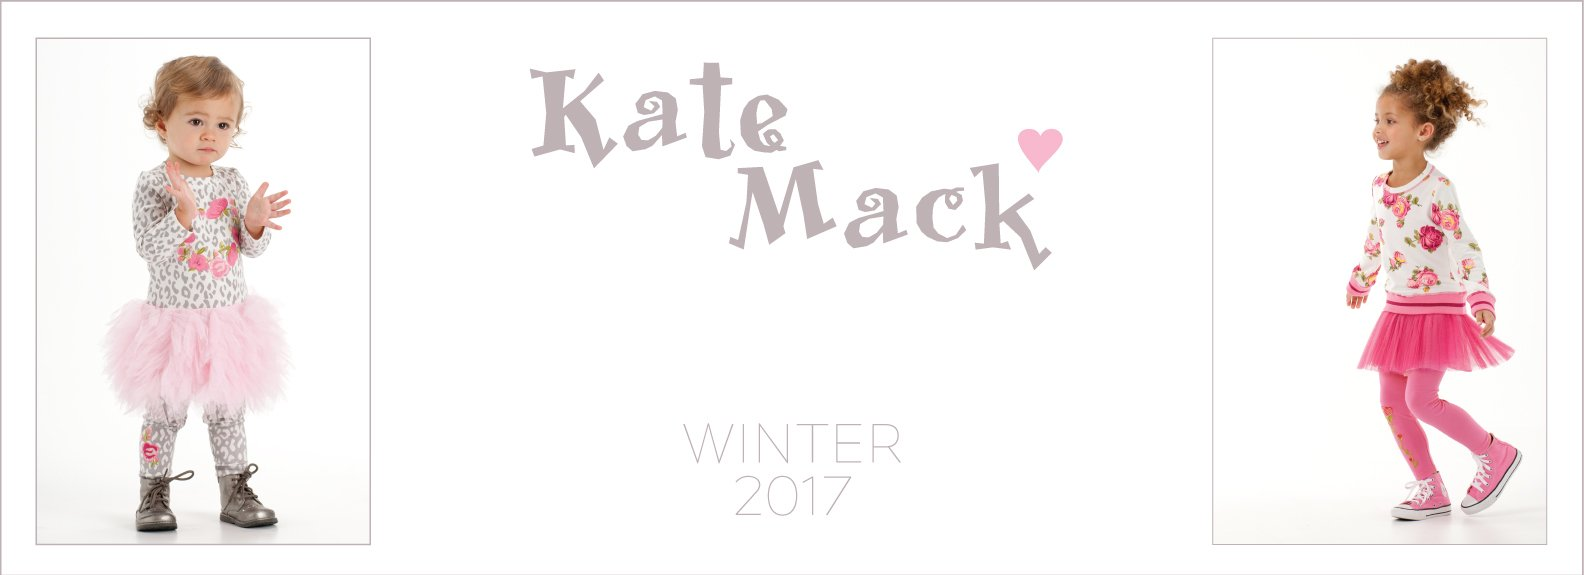 Click Here for Kate Mack fashions...